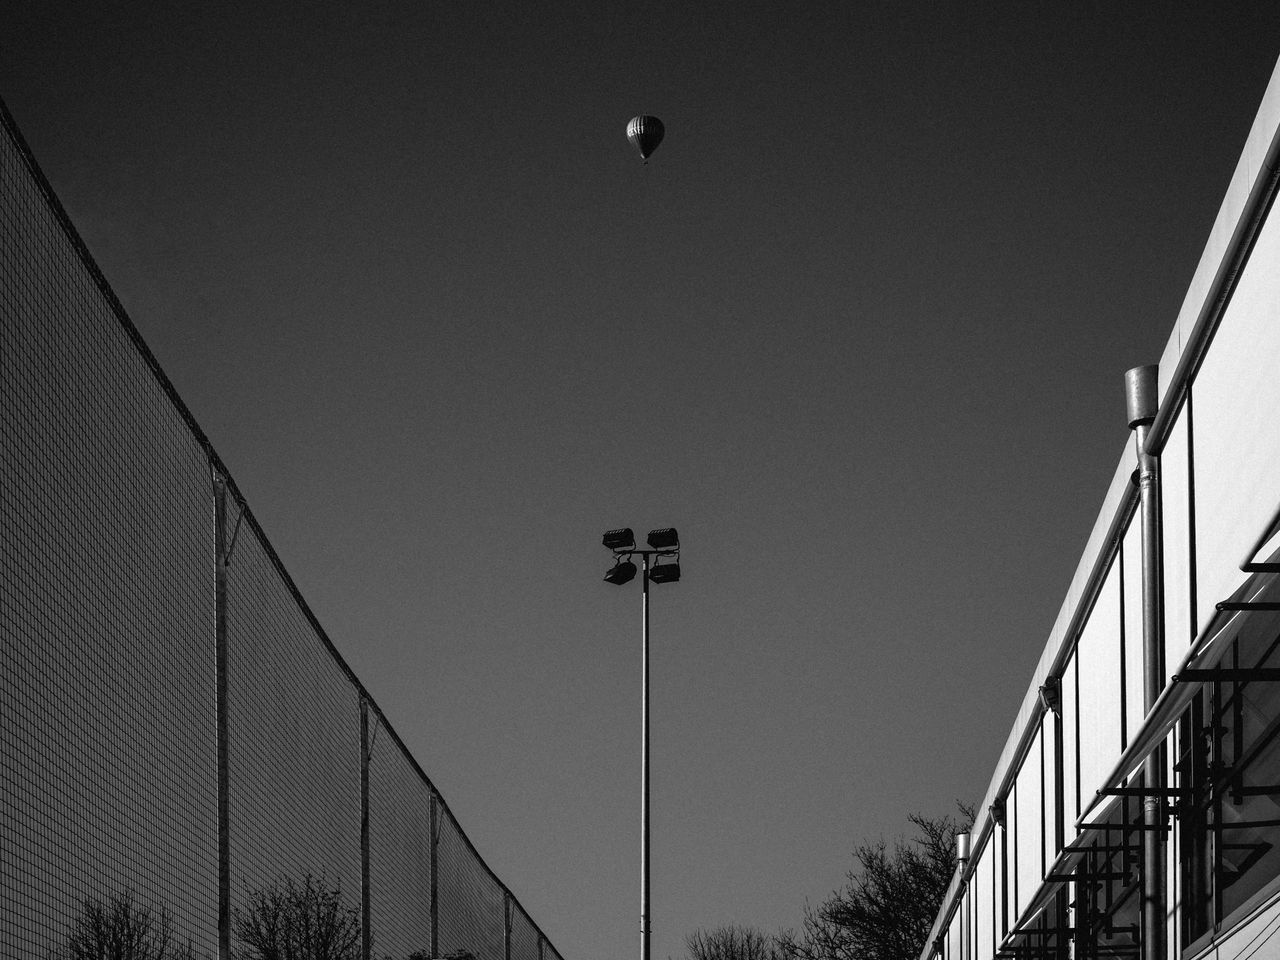 Mono Me Balloon Blackandwhite Clear Sky Connection Copy Space Development Engineering Flag Hanging Hot-air Balloon Identity Lighting Equipment Low Angle View Modern Monochrome Perspective Pole Railing Staircase Street Light Structure